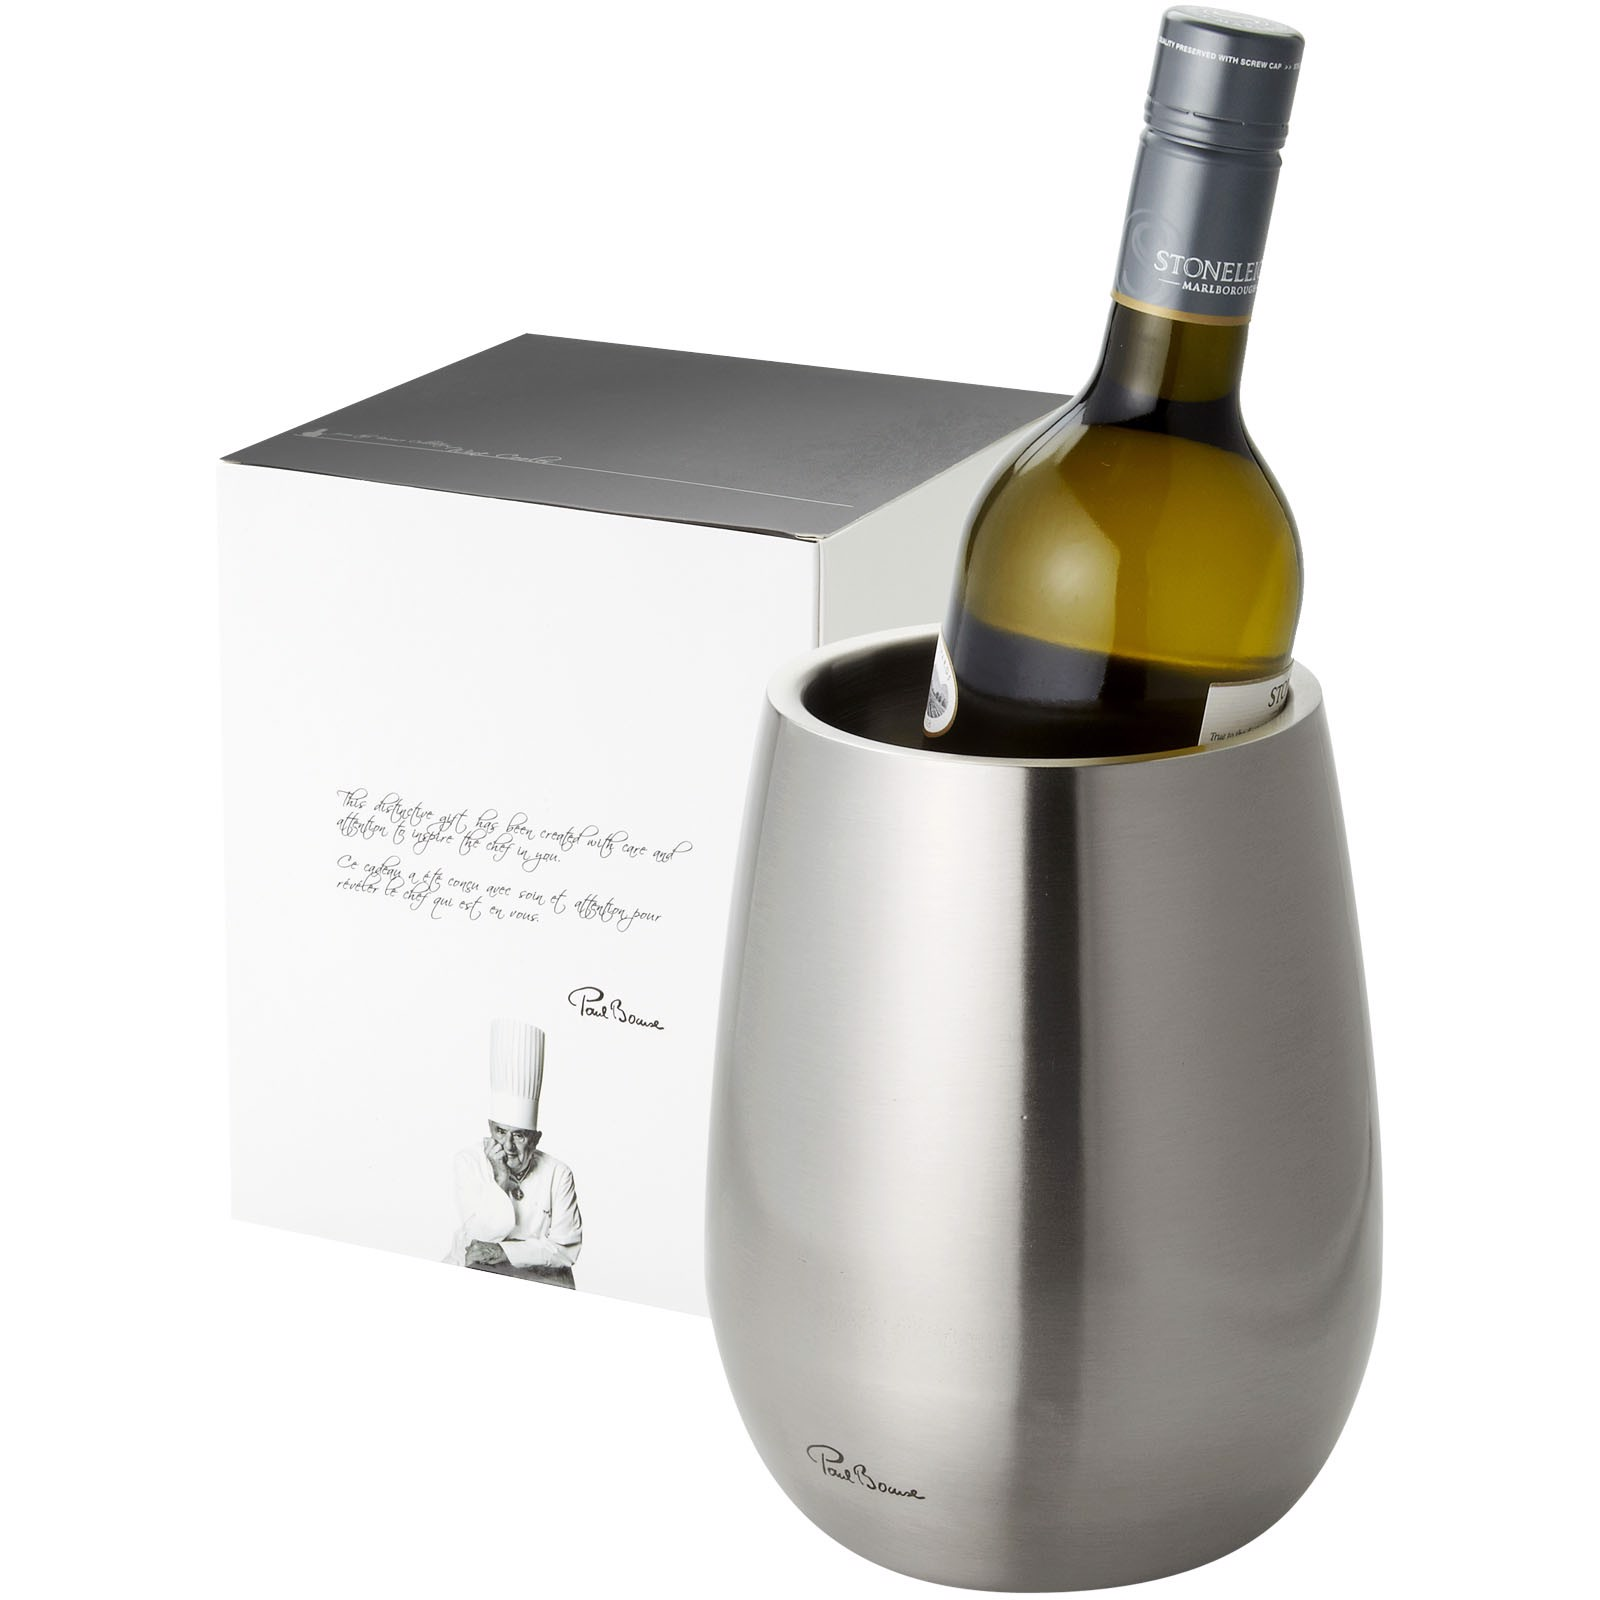 Coulan double-walled stainless steel wine cooler - Silver